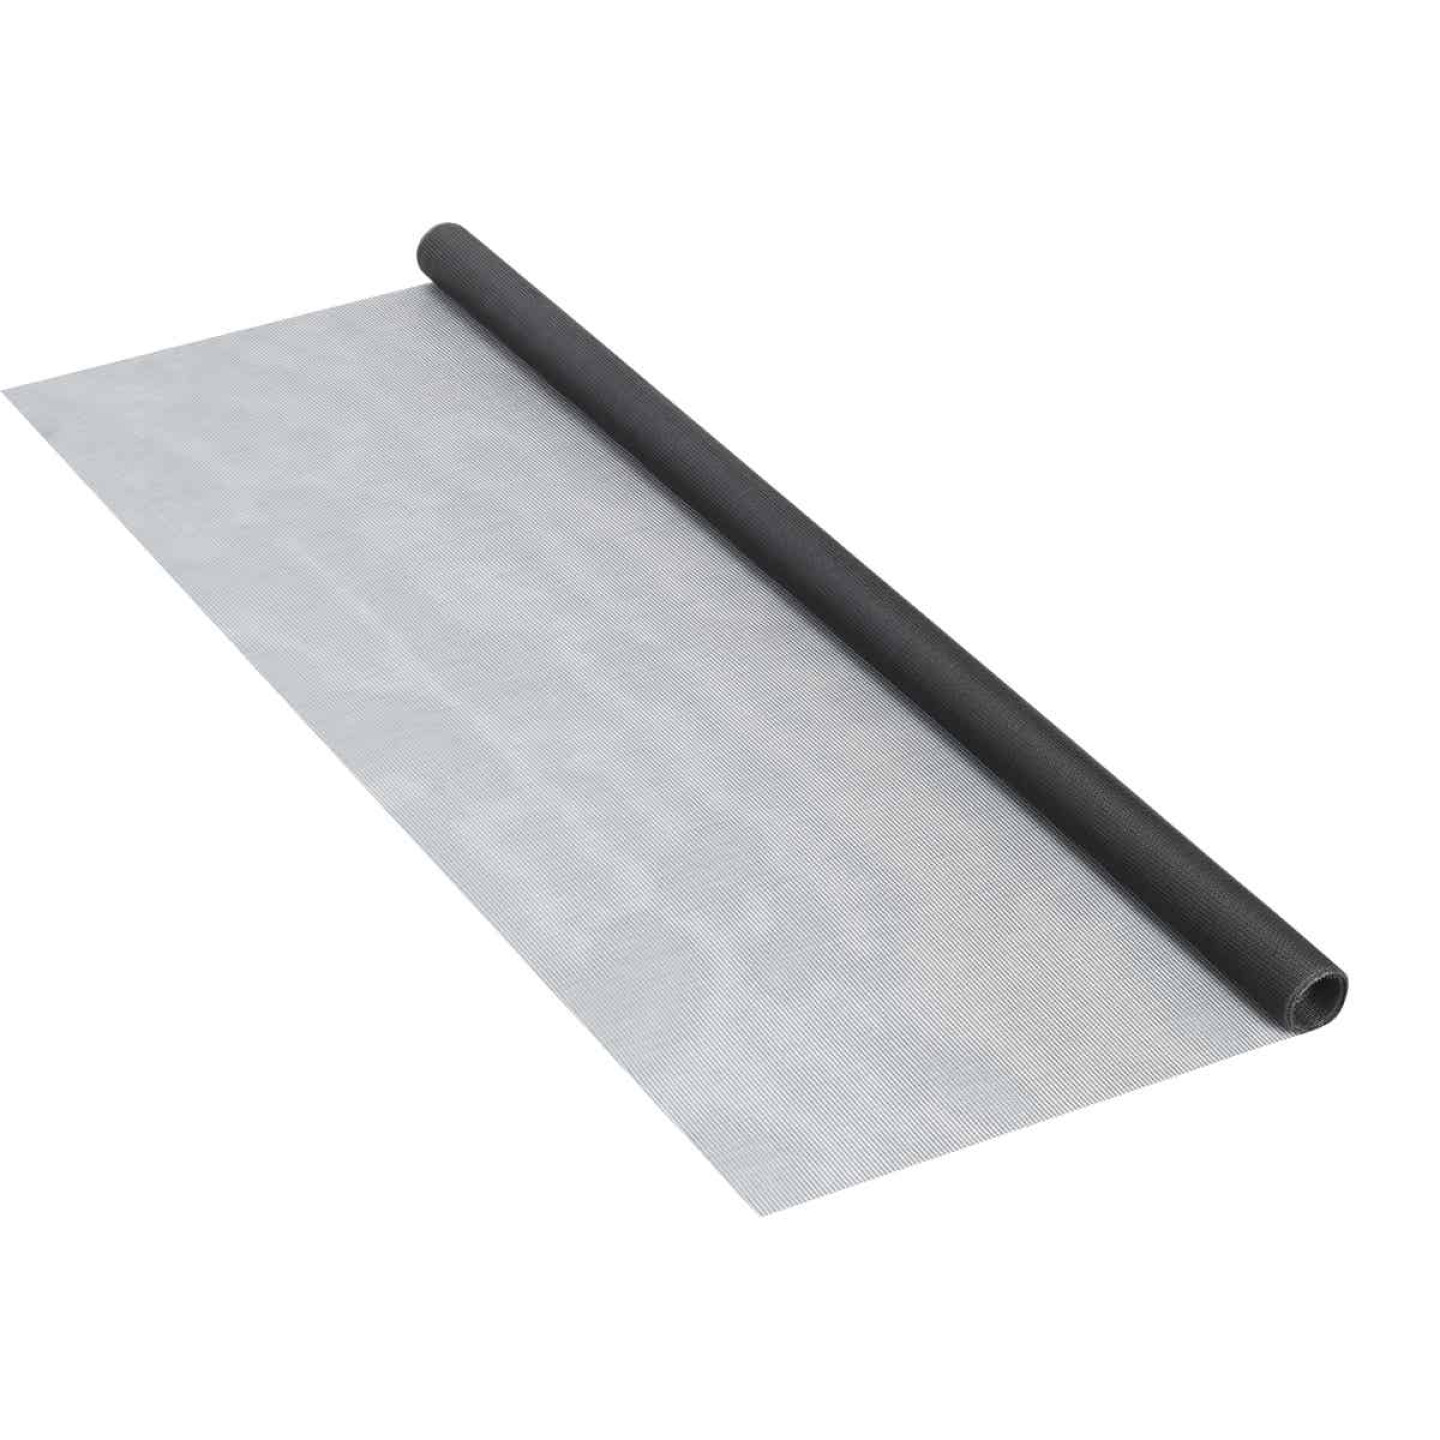 Phifer 30 In. x 84 In. Charcoal Fiberglass Screen Cloth Ready Rolls Image 3